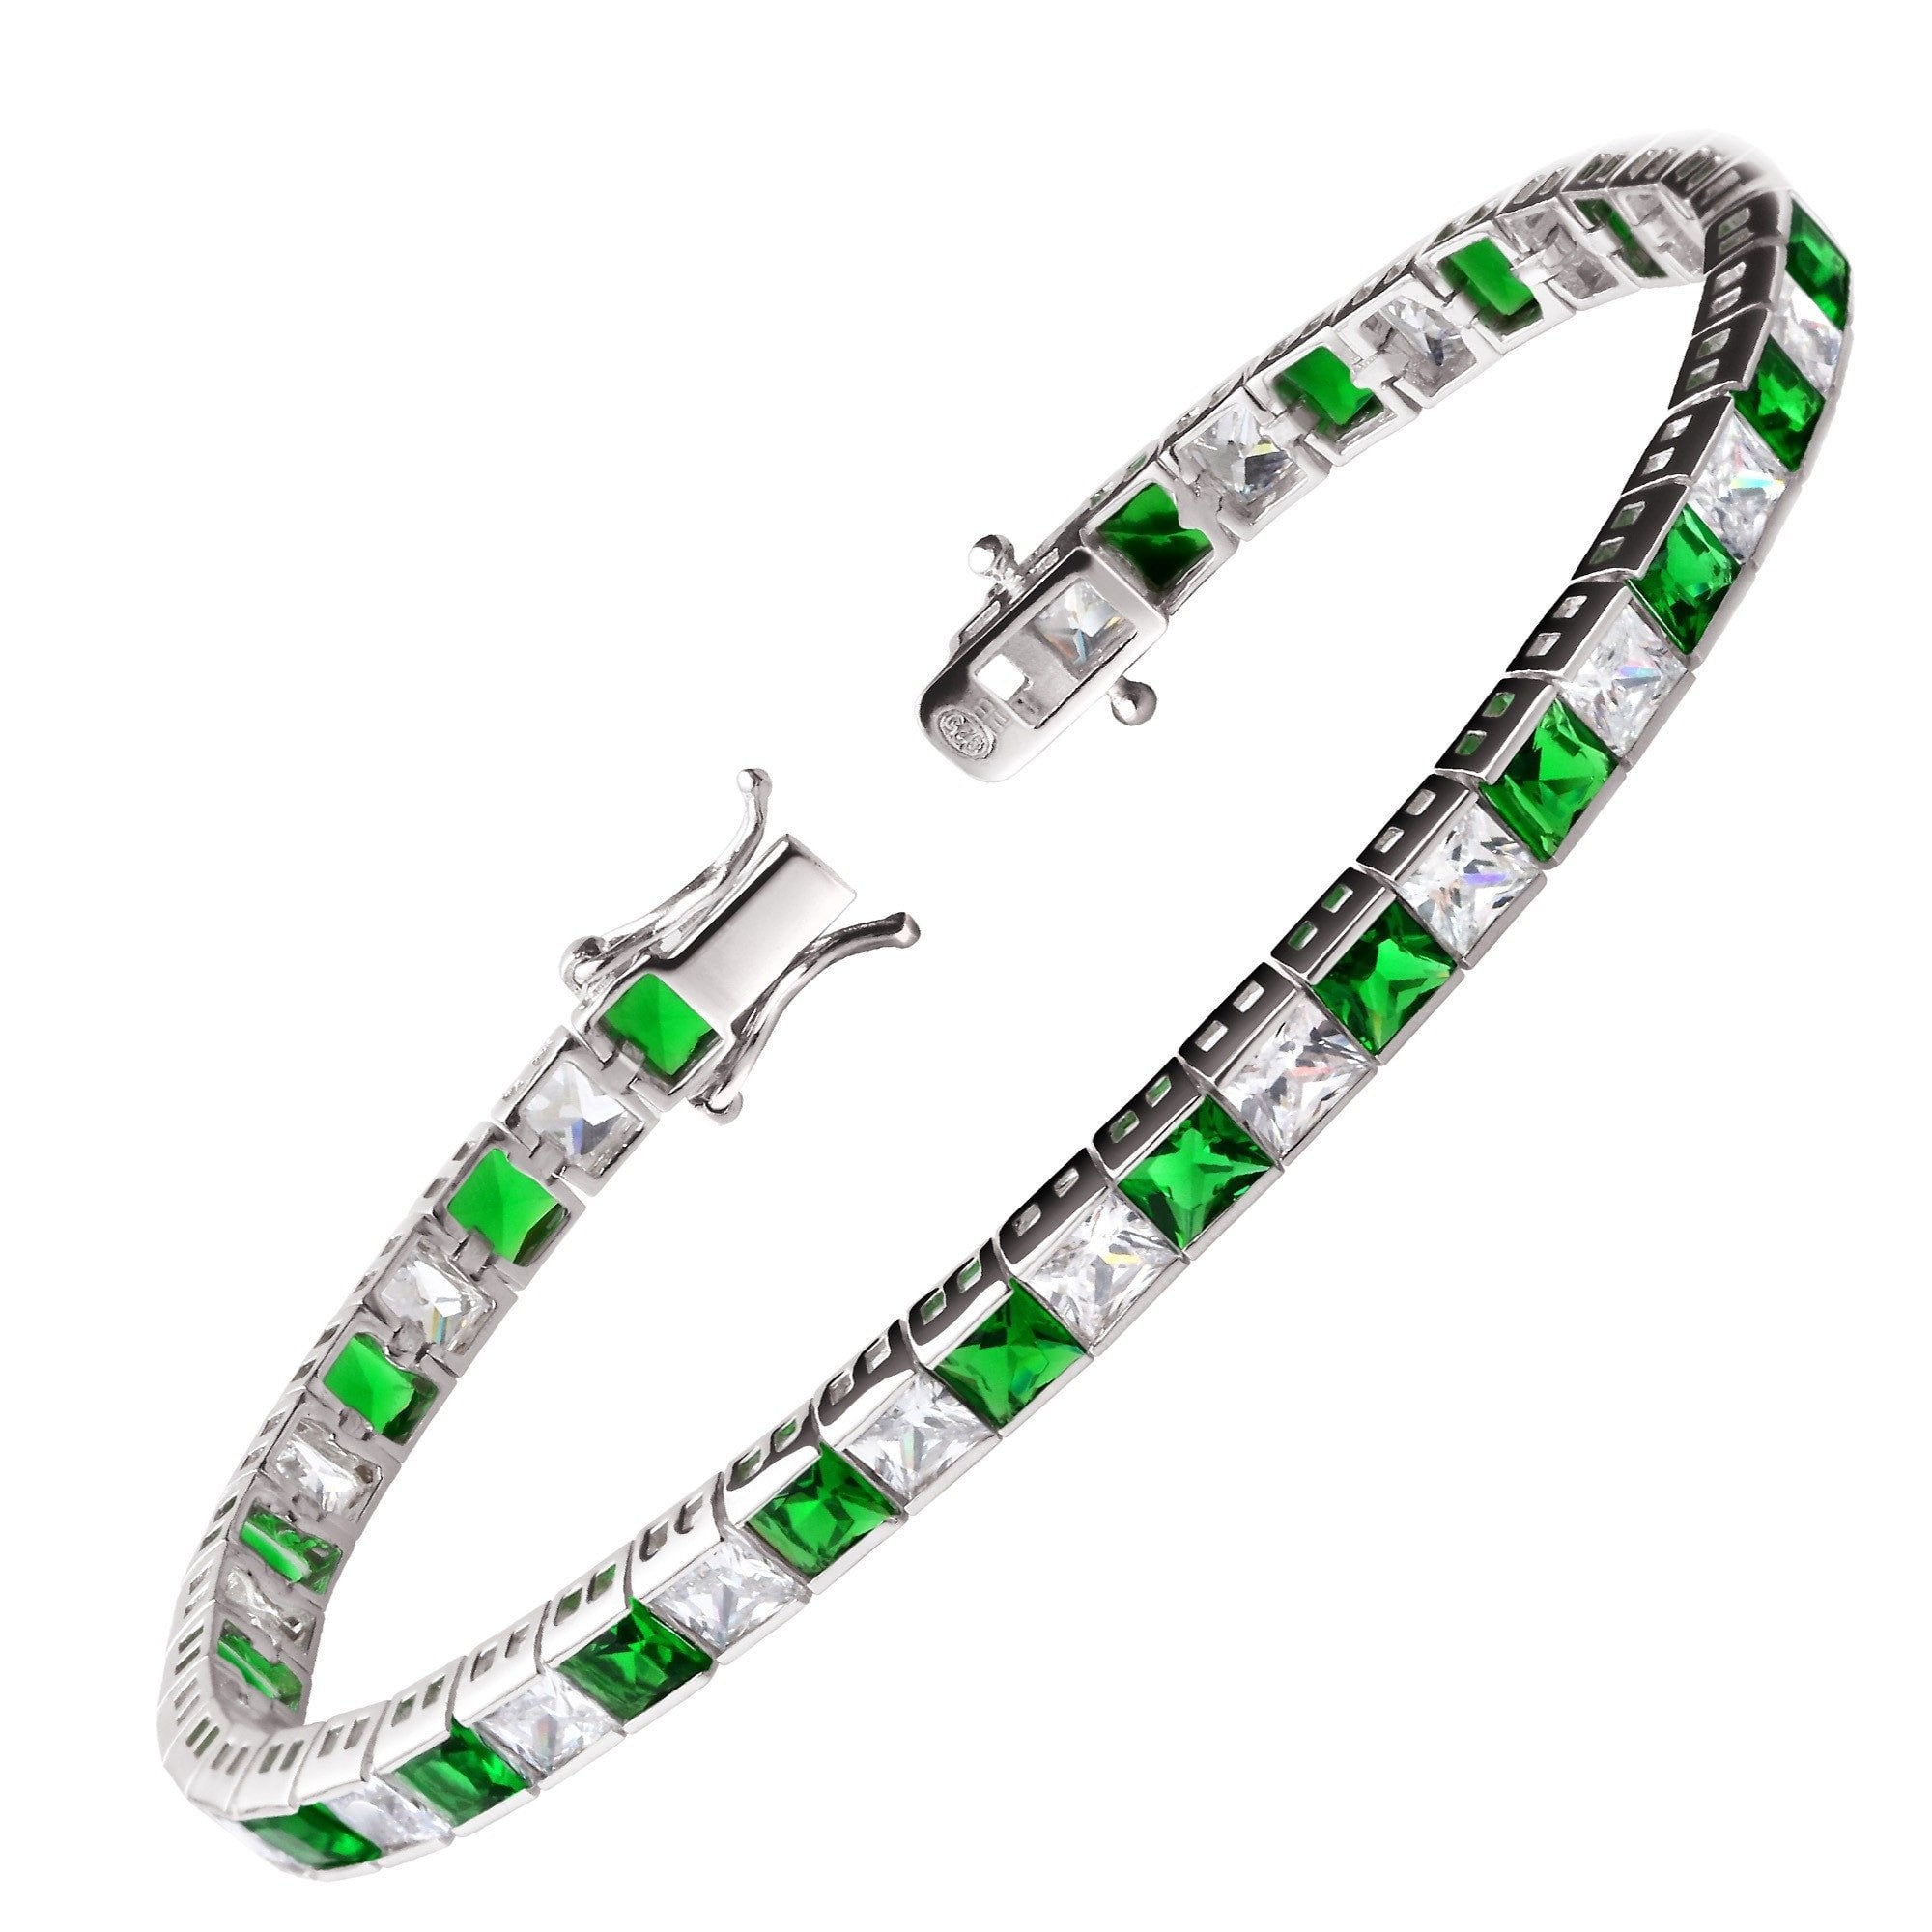 wb lumo emerald products bracelet